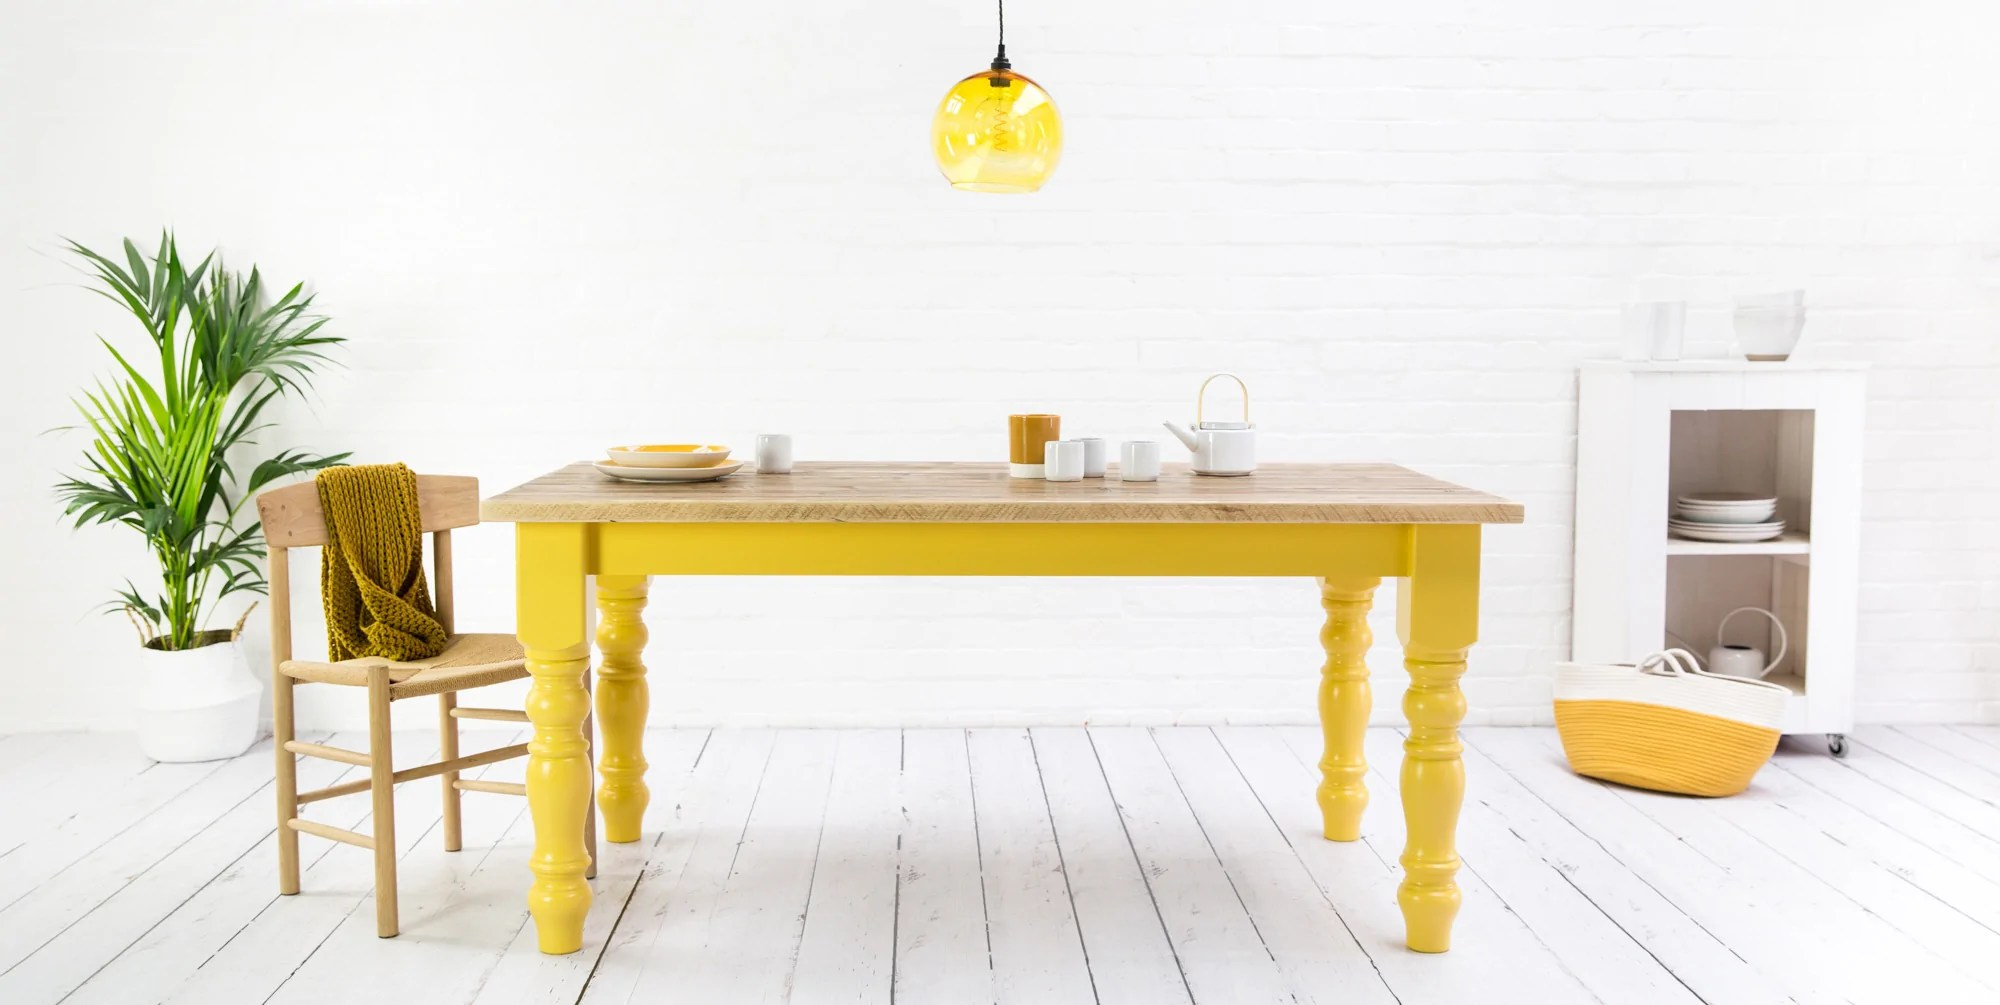 Farmhouse Table Company Farmhouse Table Farmhouse Furniture Farmhouse Table